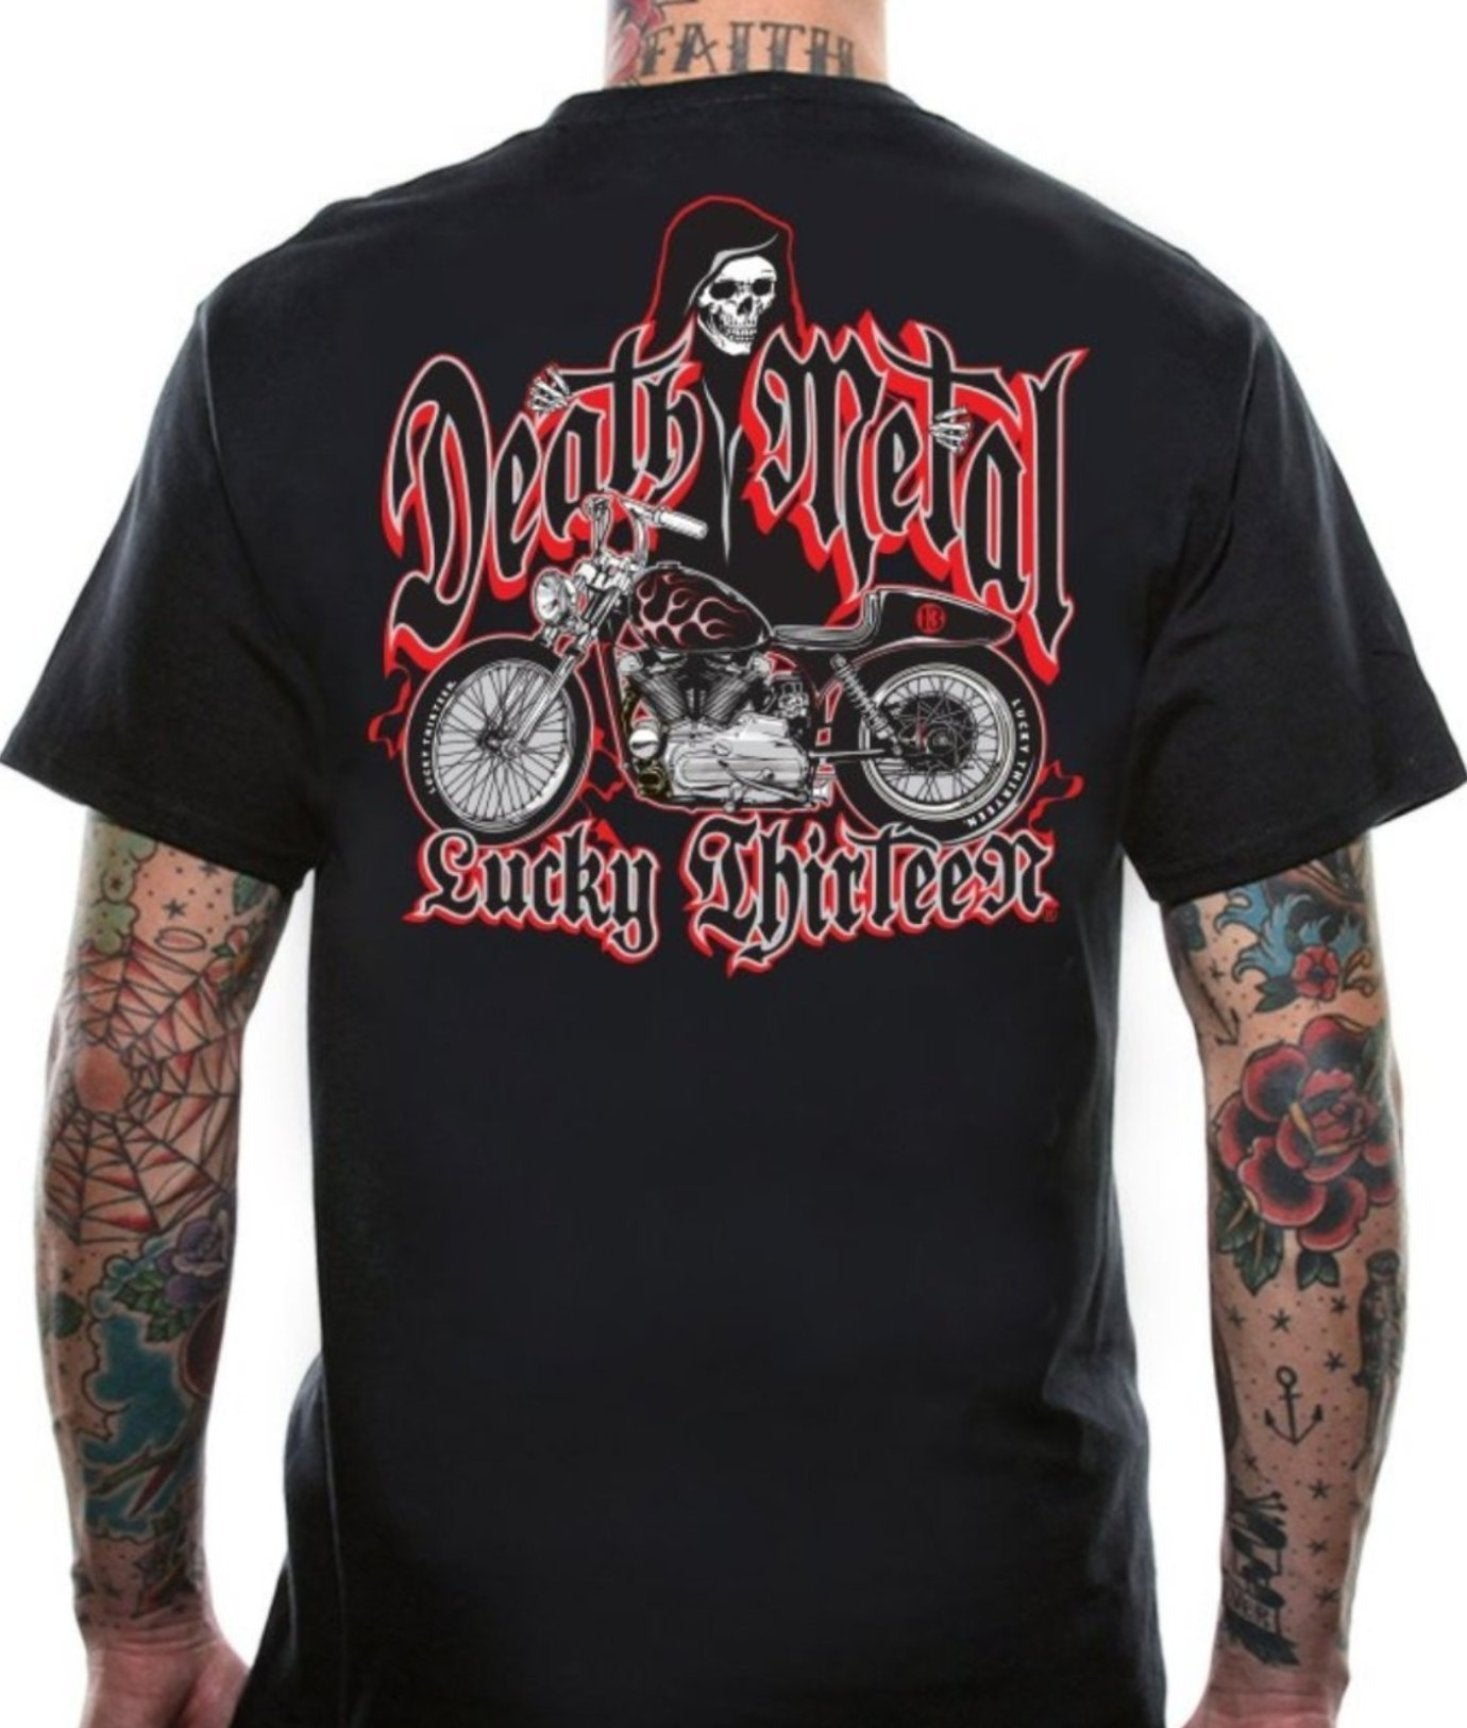 The DEATH METAL Tee